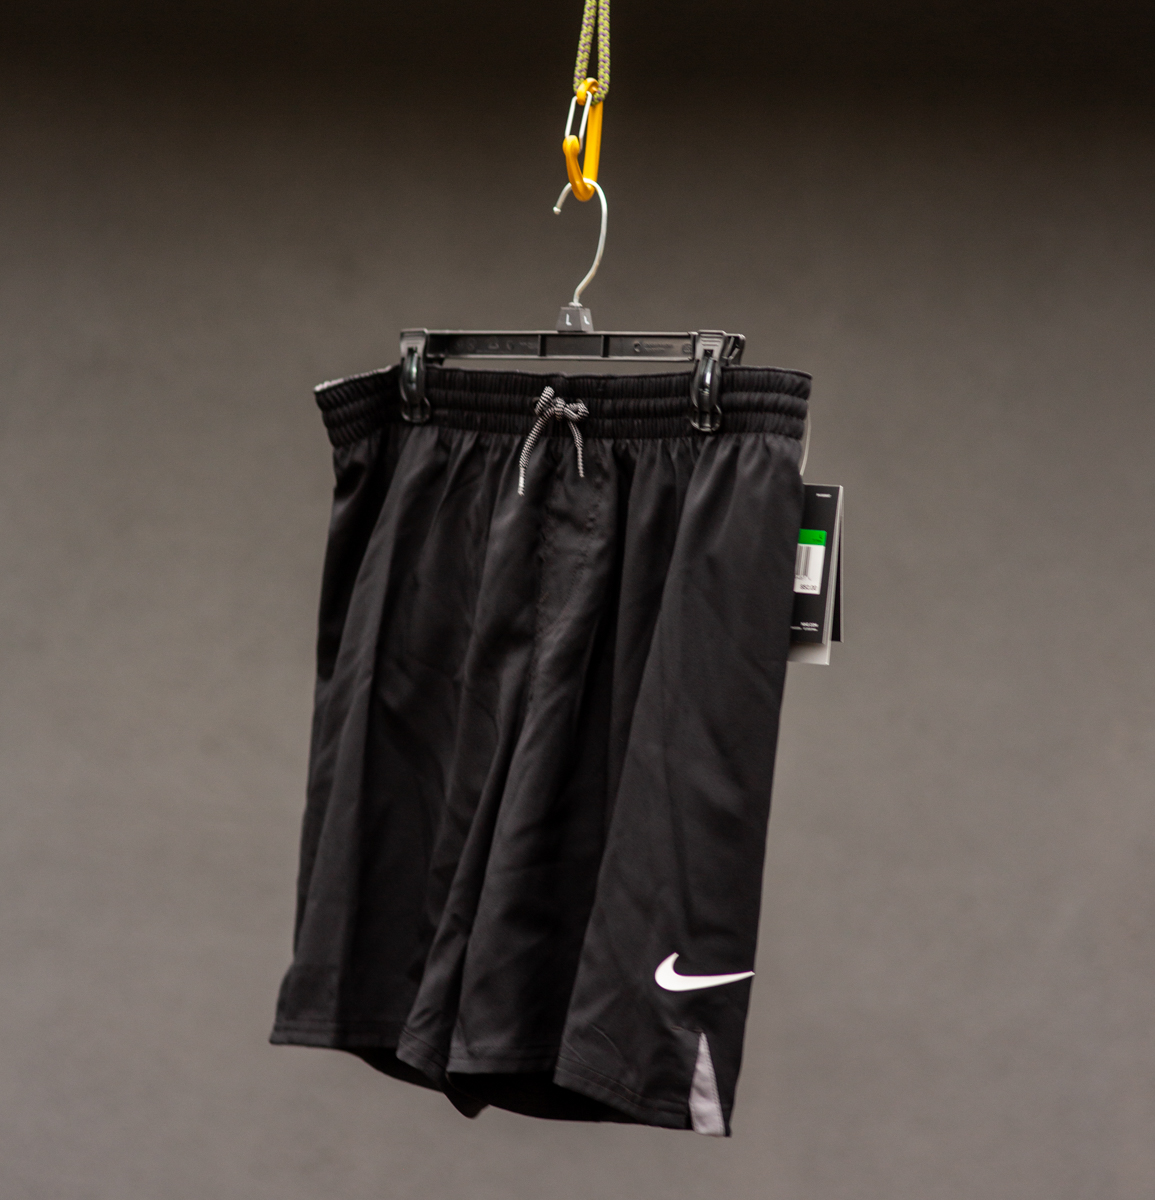 Sz. Large Nike Repel Swim Trunks new w/tags | $15 - Retails for $52. New with tags.